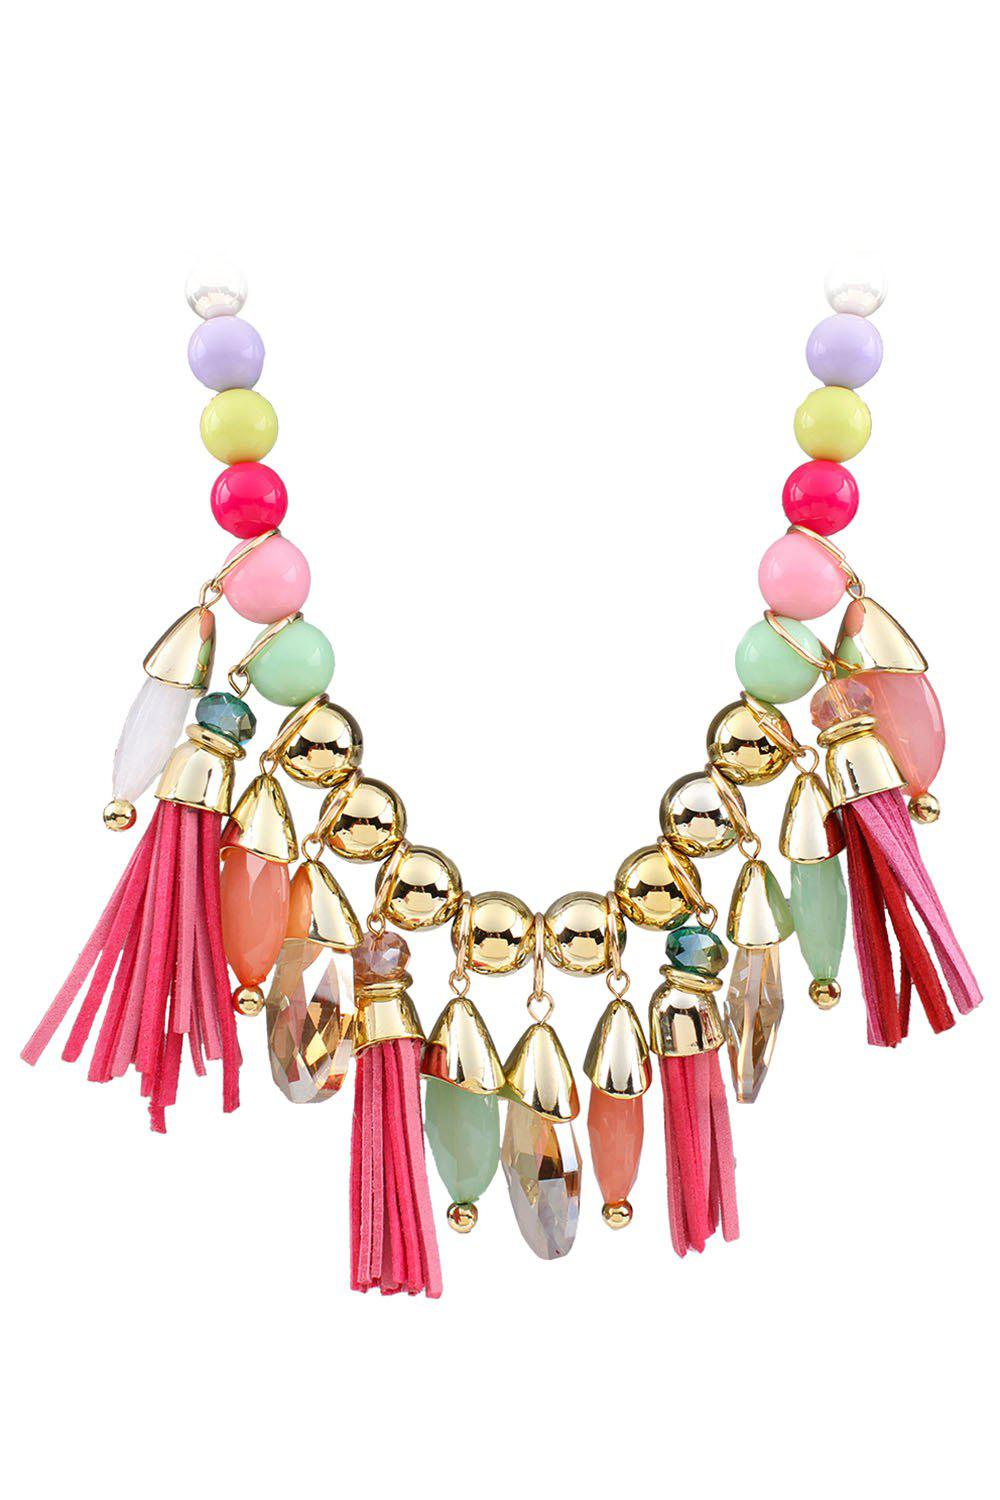 Ethnic Faux Leather Tassel Multi-Layered Necklace For Women - COLORMIX